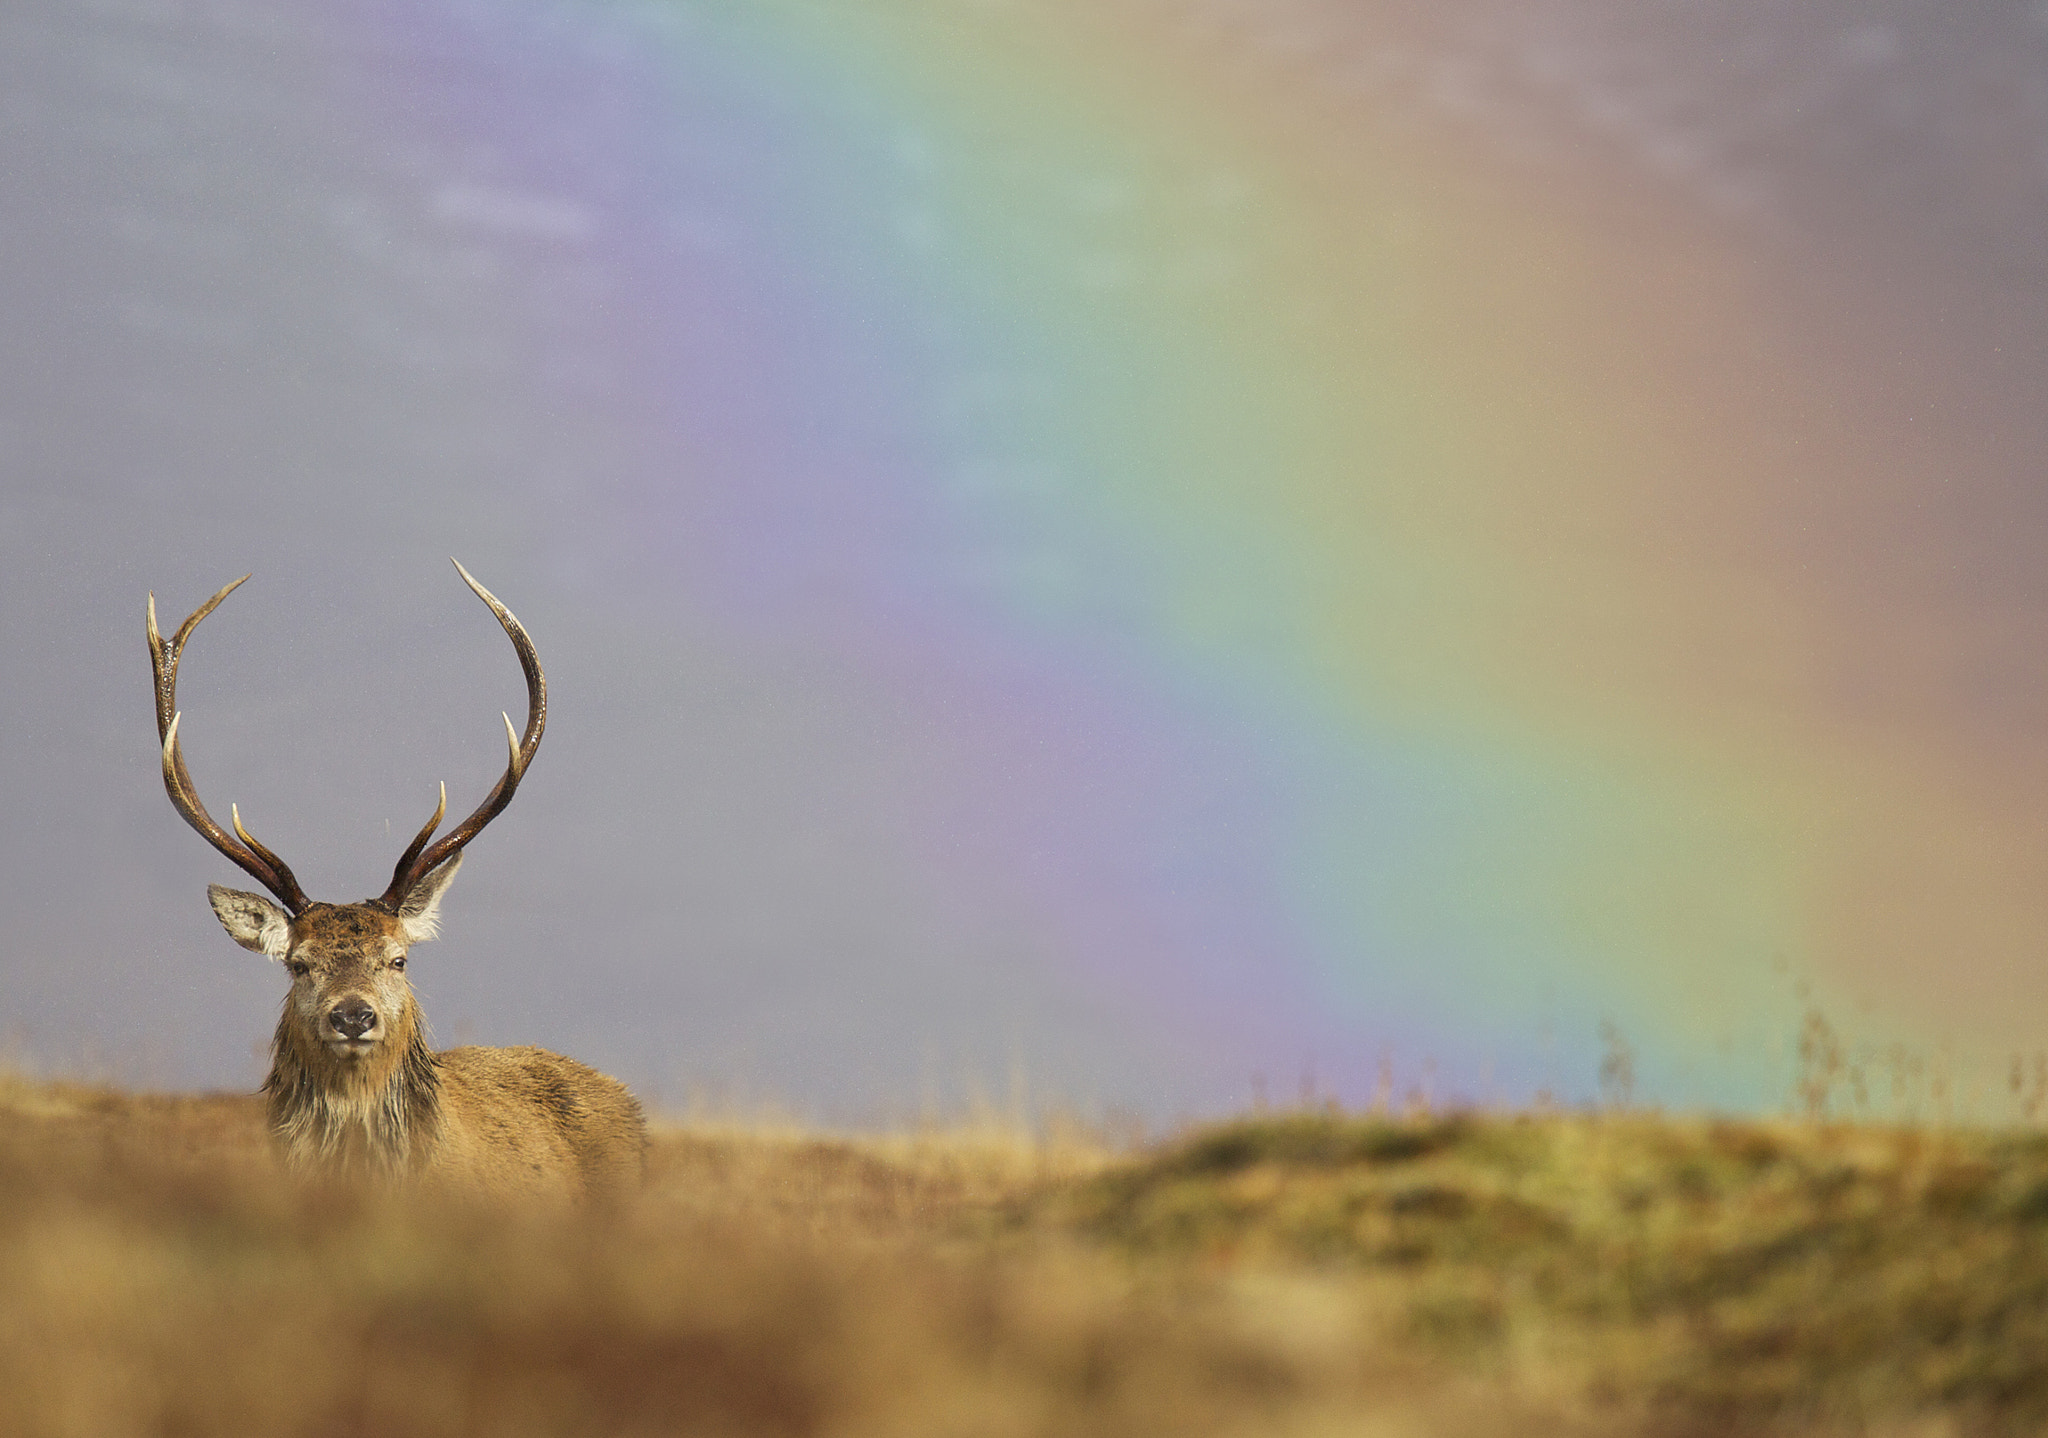 Photograph Stag by Sylwia Domaradzka on 500px